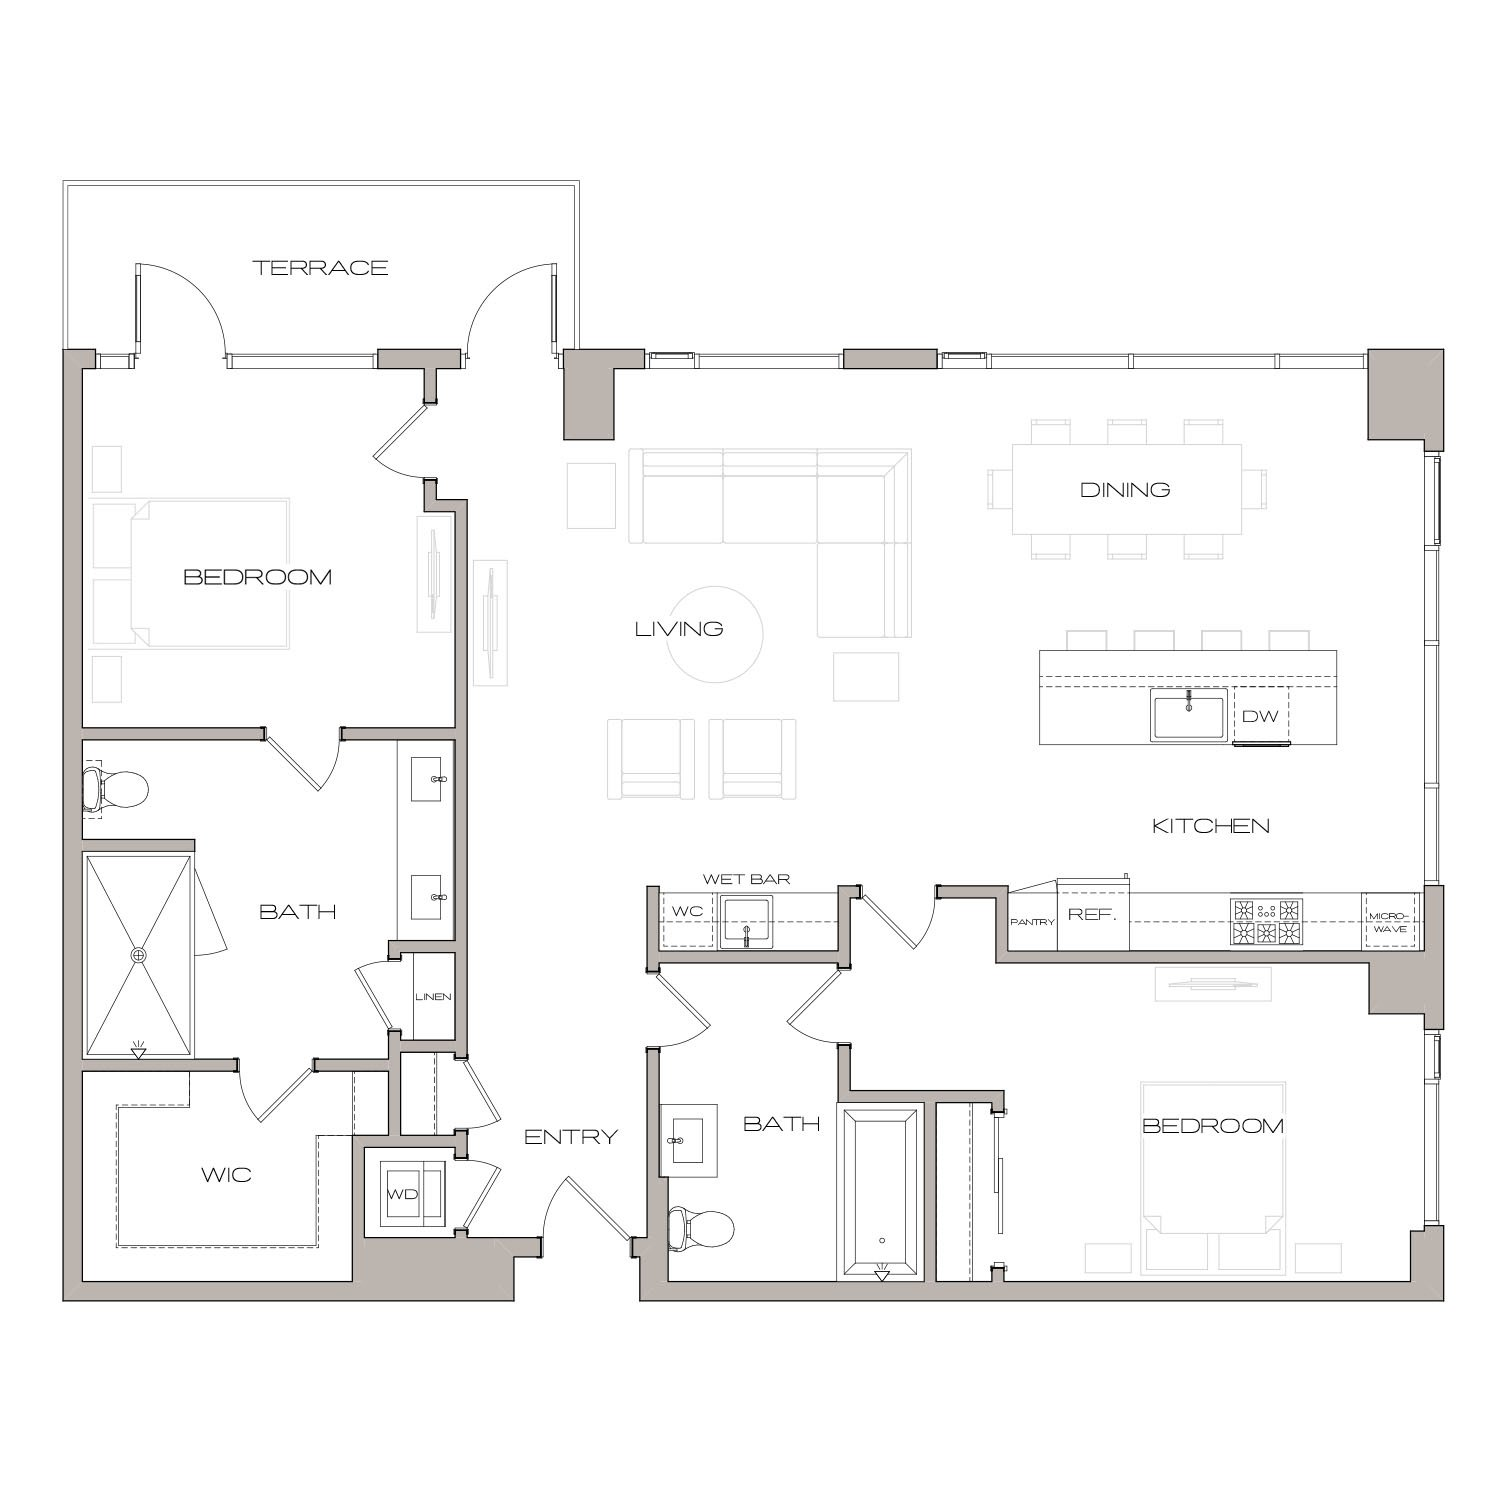 P H 2 floor plan diagram. Penthouse apartment with two bedrooms, two bathrooms, an open kitchen living and dining area, a wet bar, a terrace, and a washer dryer.